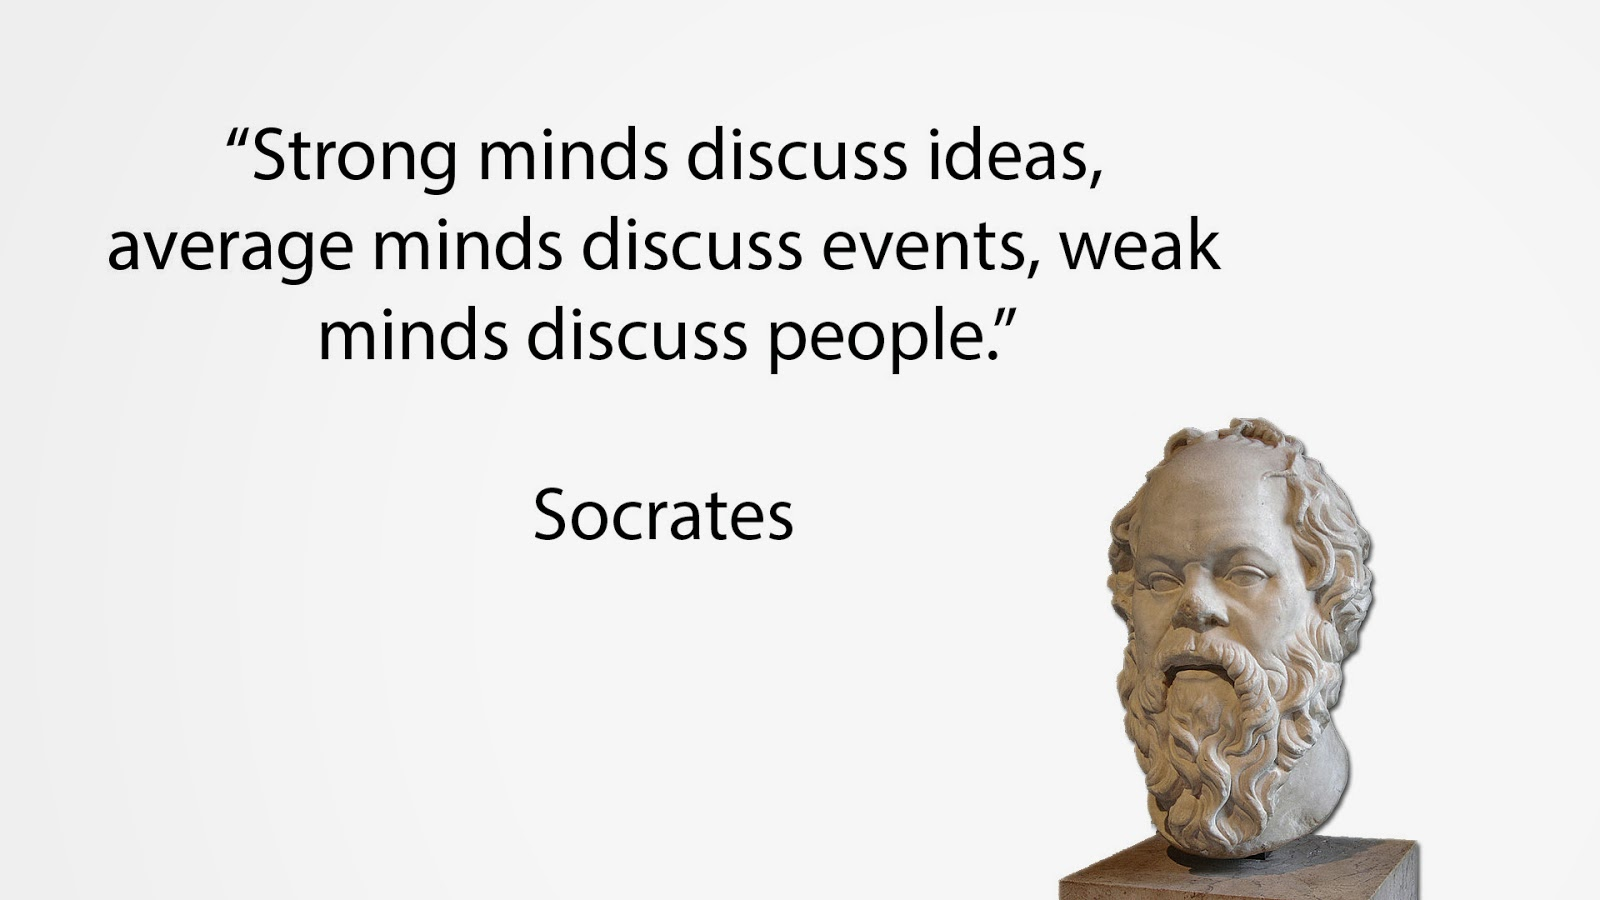 Strong minds discuss ideas, average minds discuss events, weak minds discuss people.